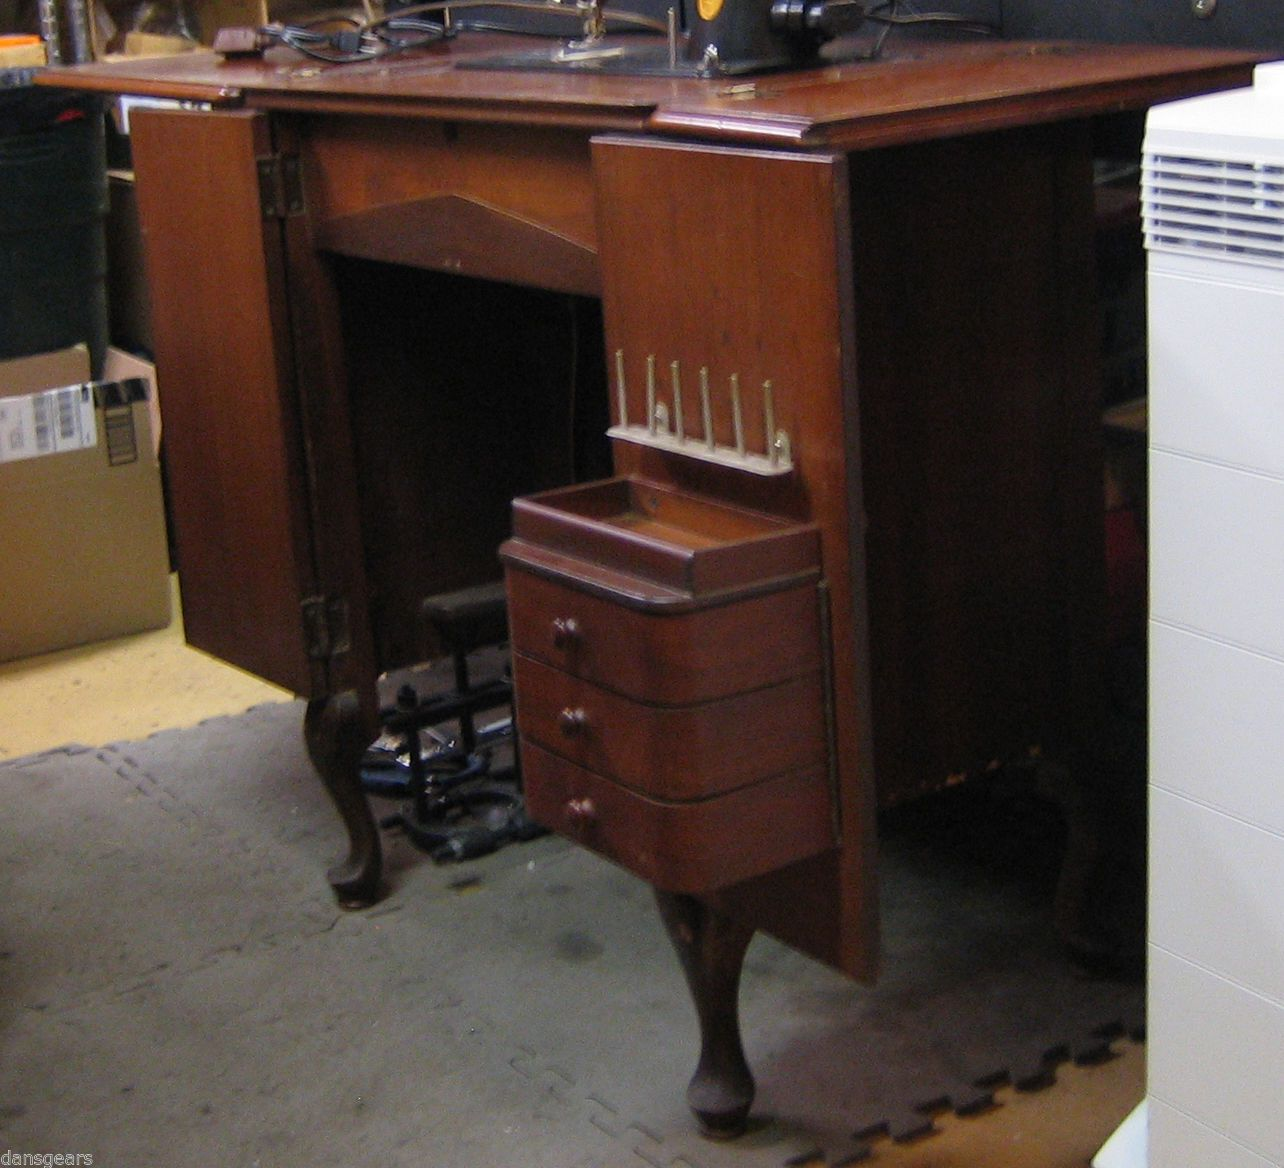 RARE Singer Cabinet No 48 for 201 2 Sewing Machine Fits Full Size ...